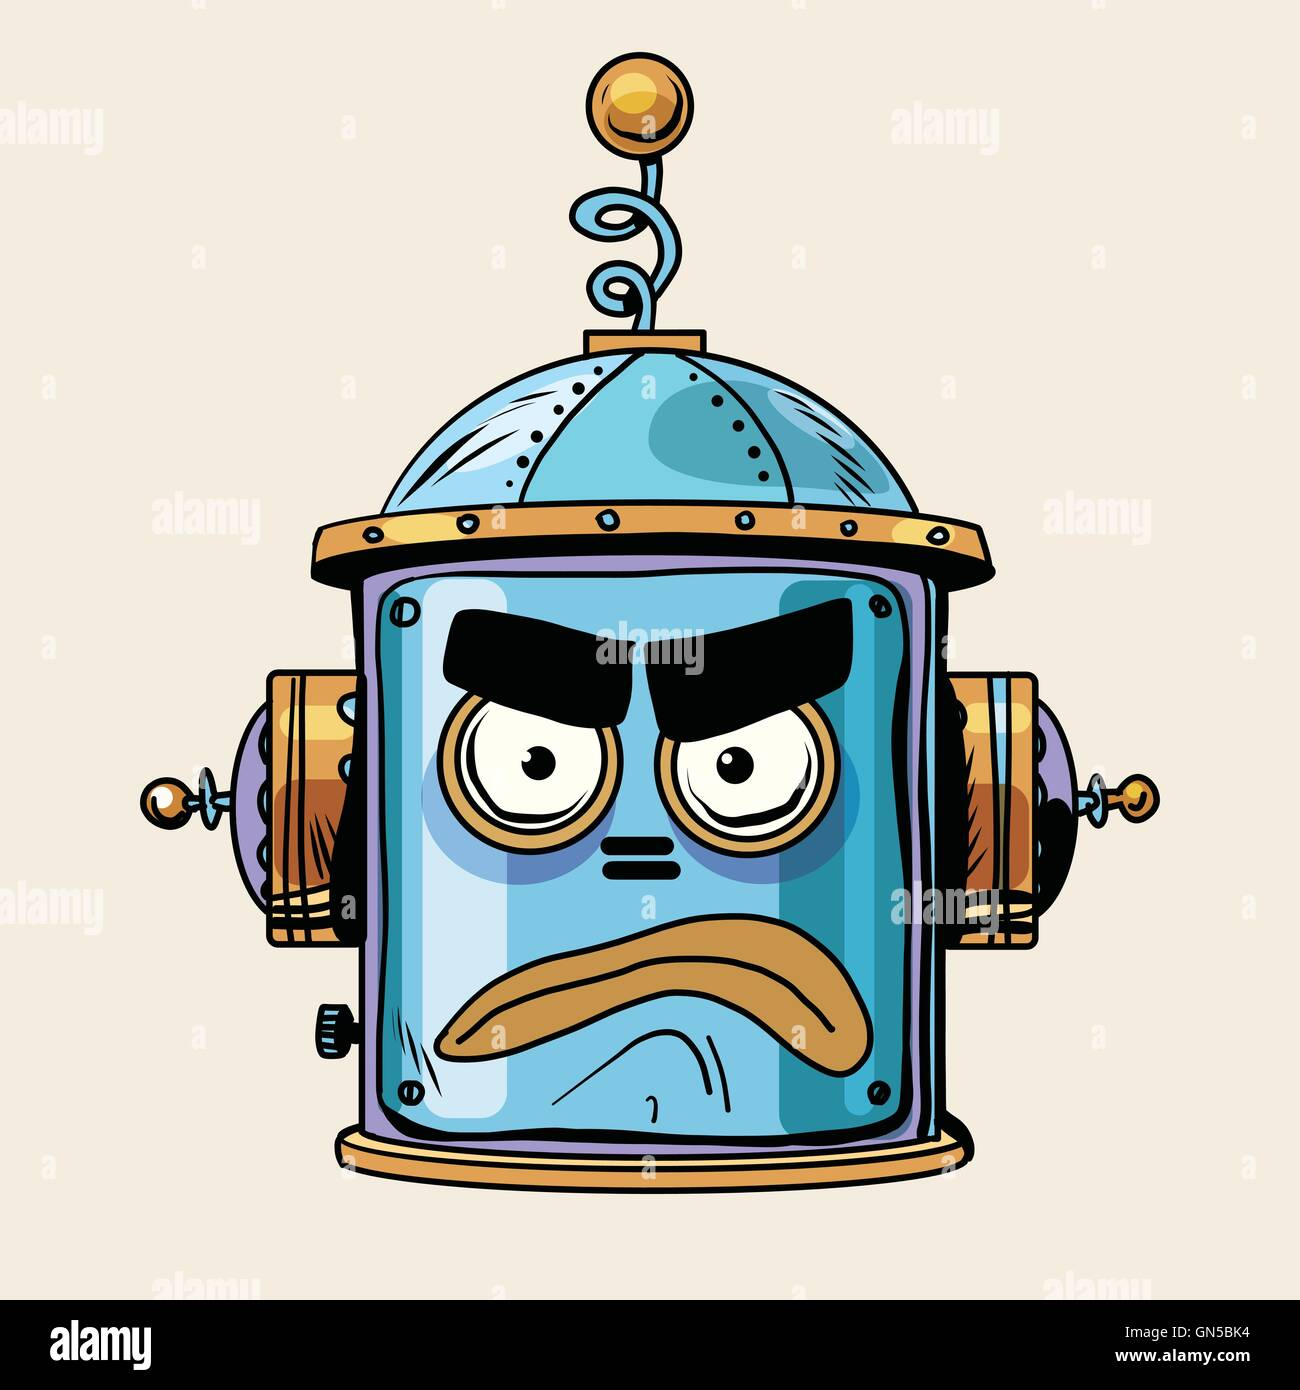 ef56bfabf0c8 Emoticon Angry Stock Photos   Emoticon Angry Stock Images - Alamy